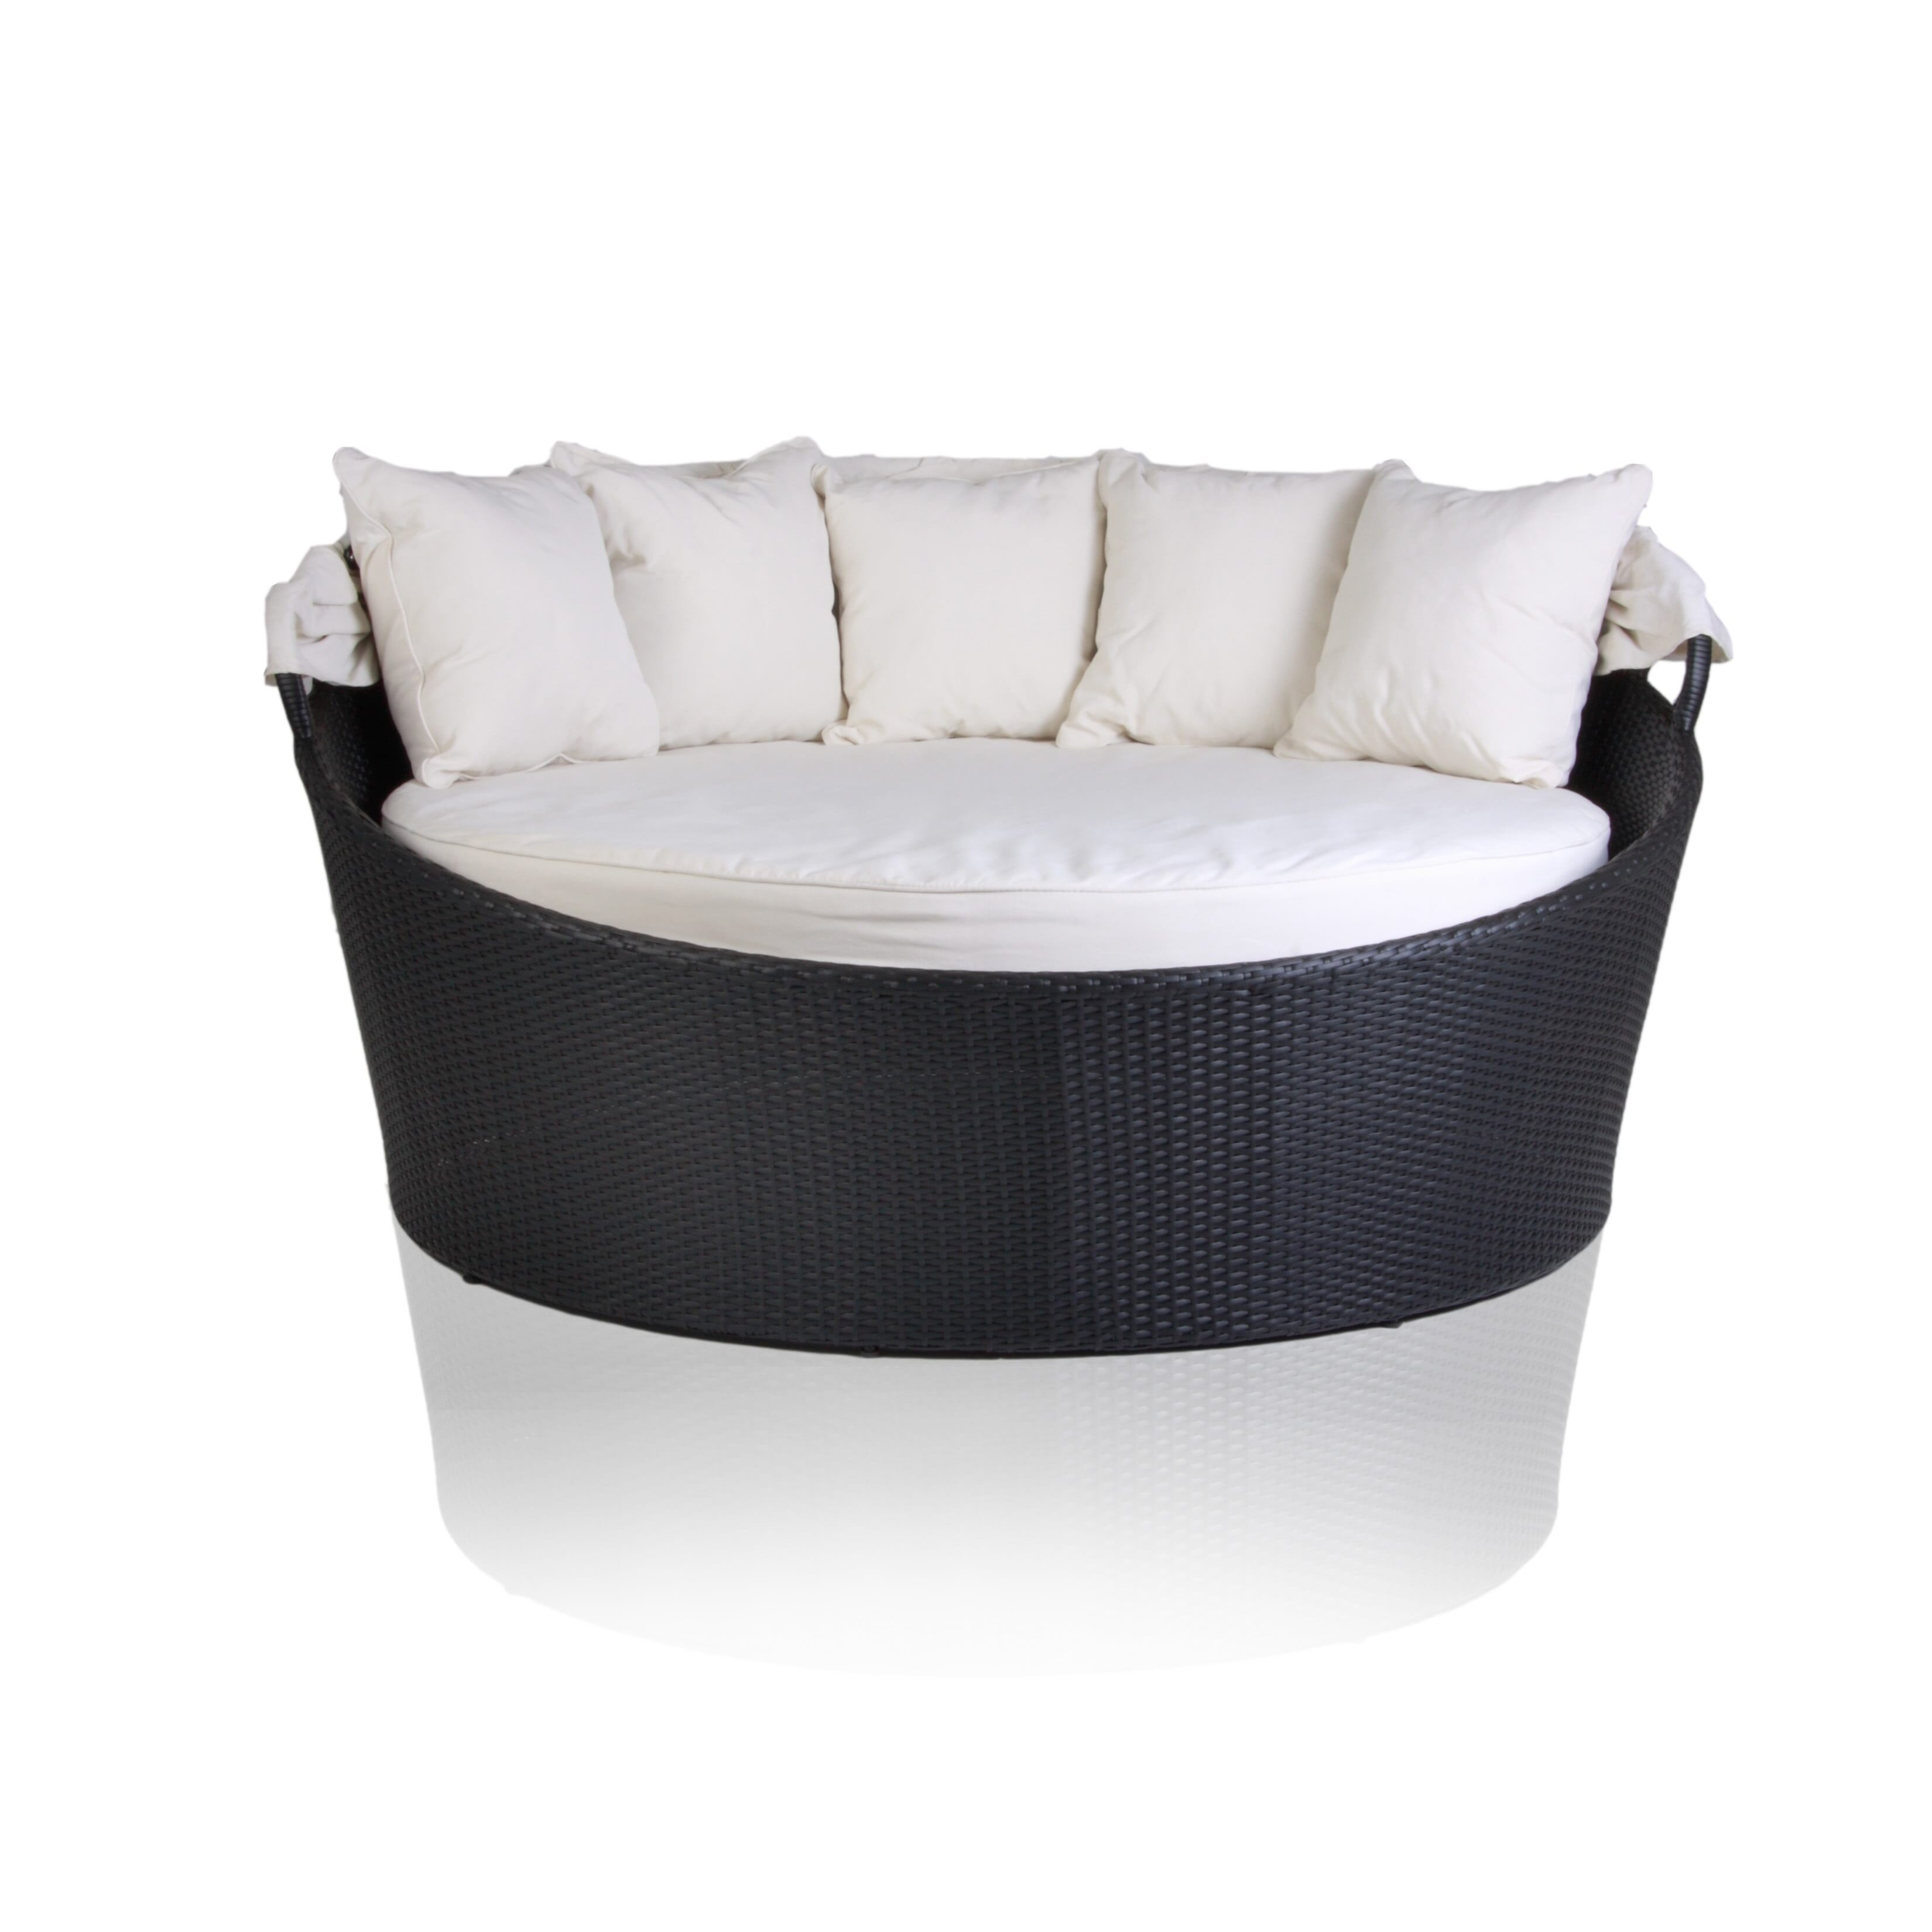 UrbanMod Outdoor Daybed with Cushions & Reviews